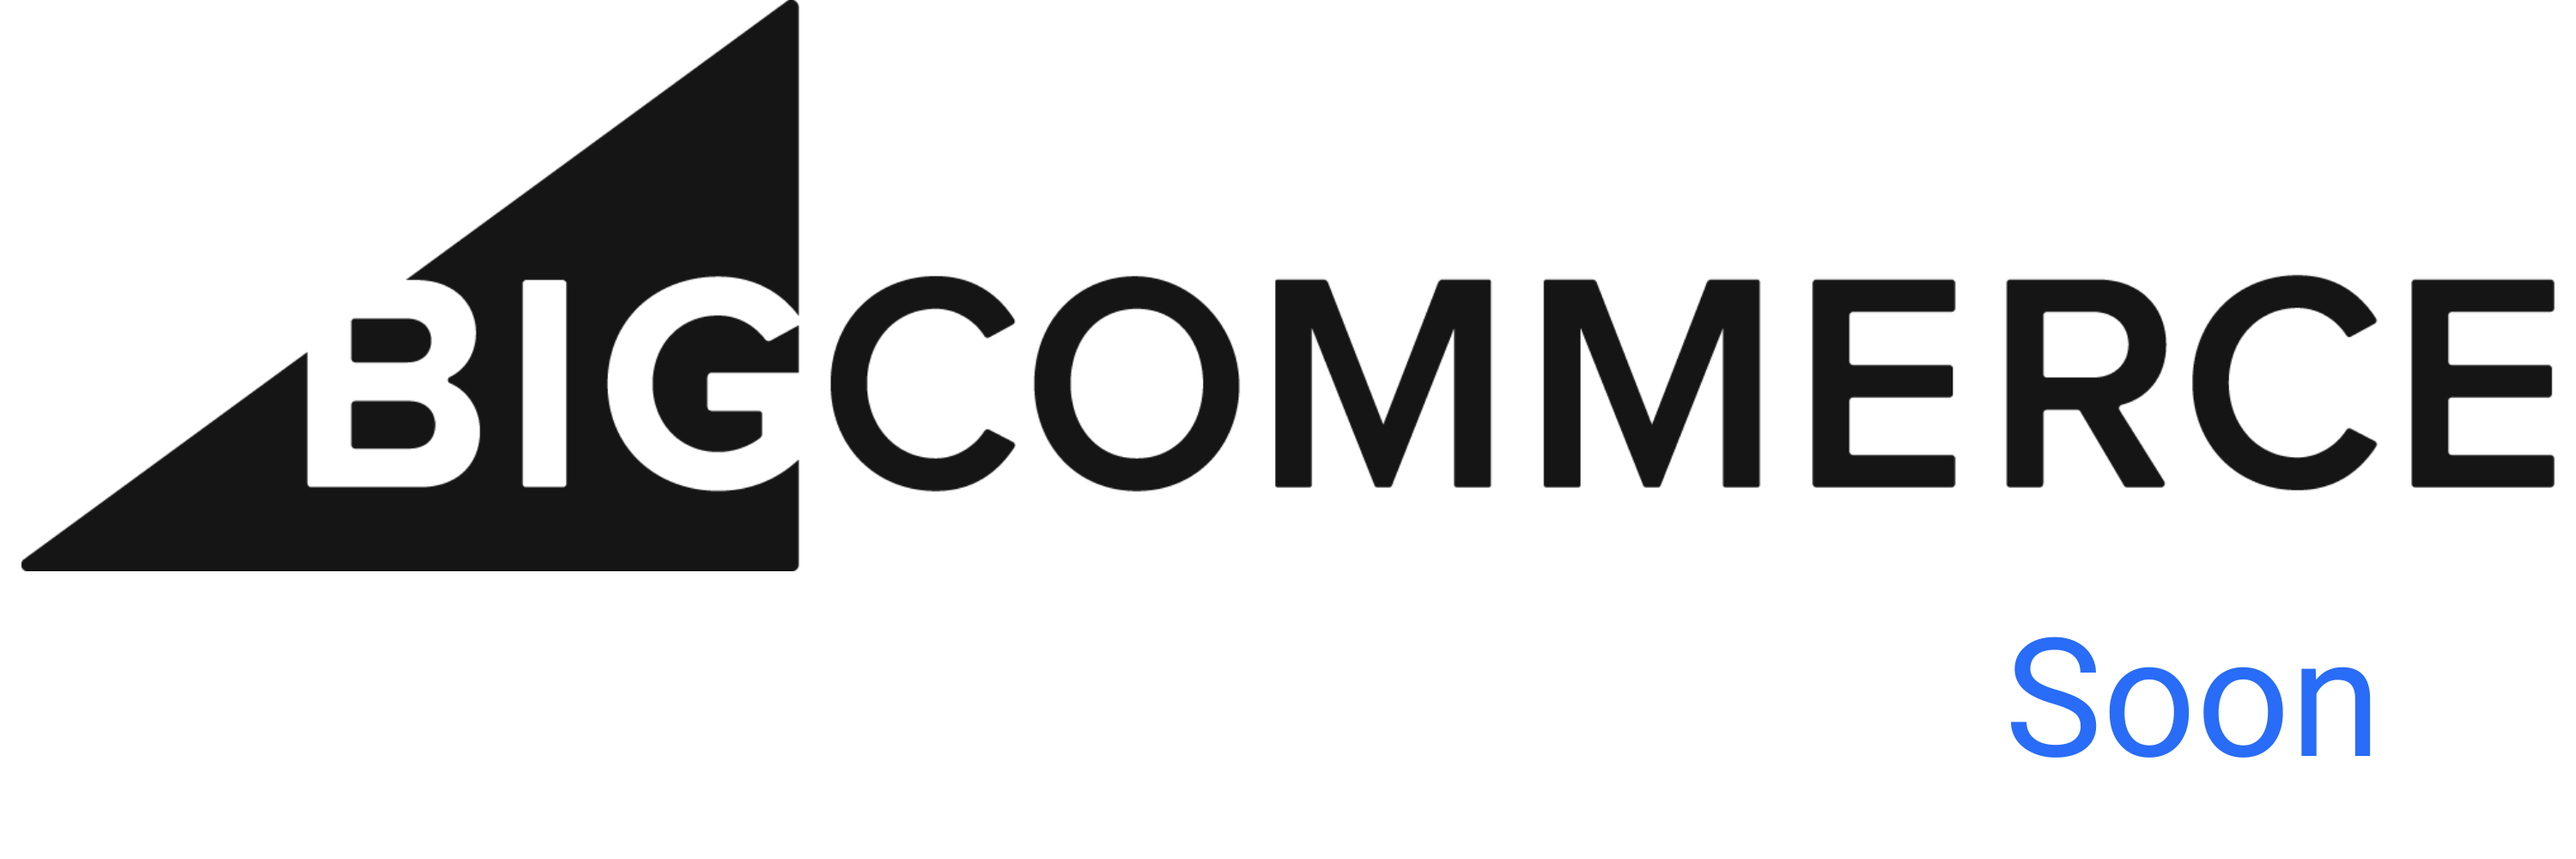 bigcommerce logo soon